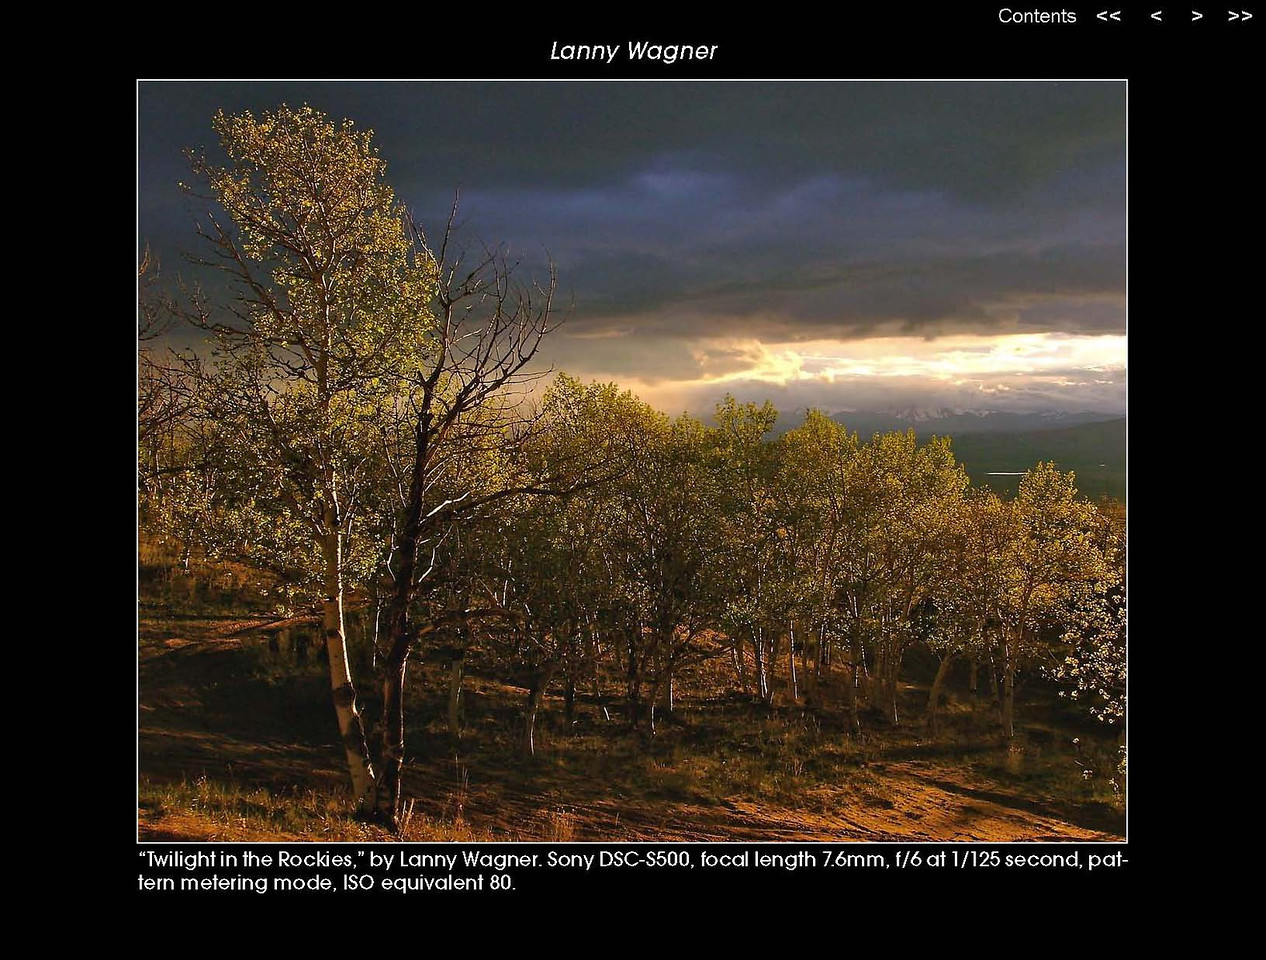 SELECTED AS WINNING IMAGE IN NATURE PHOTOGRAPHY MAGAZINES 2012 APP CONTEST